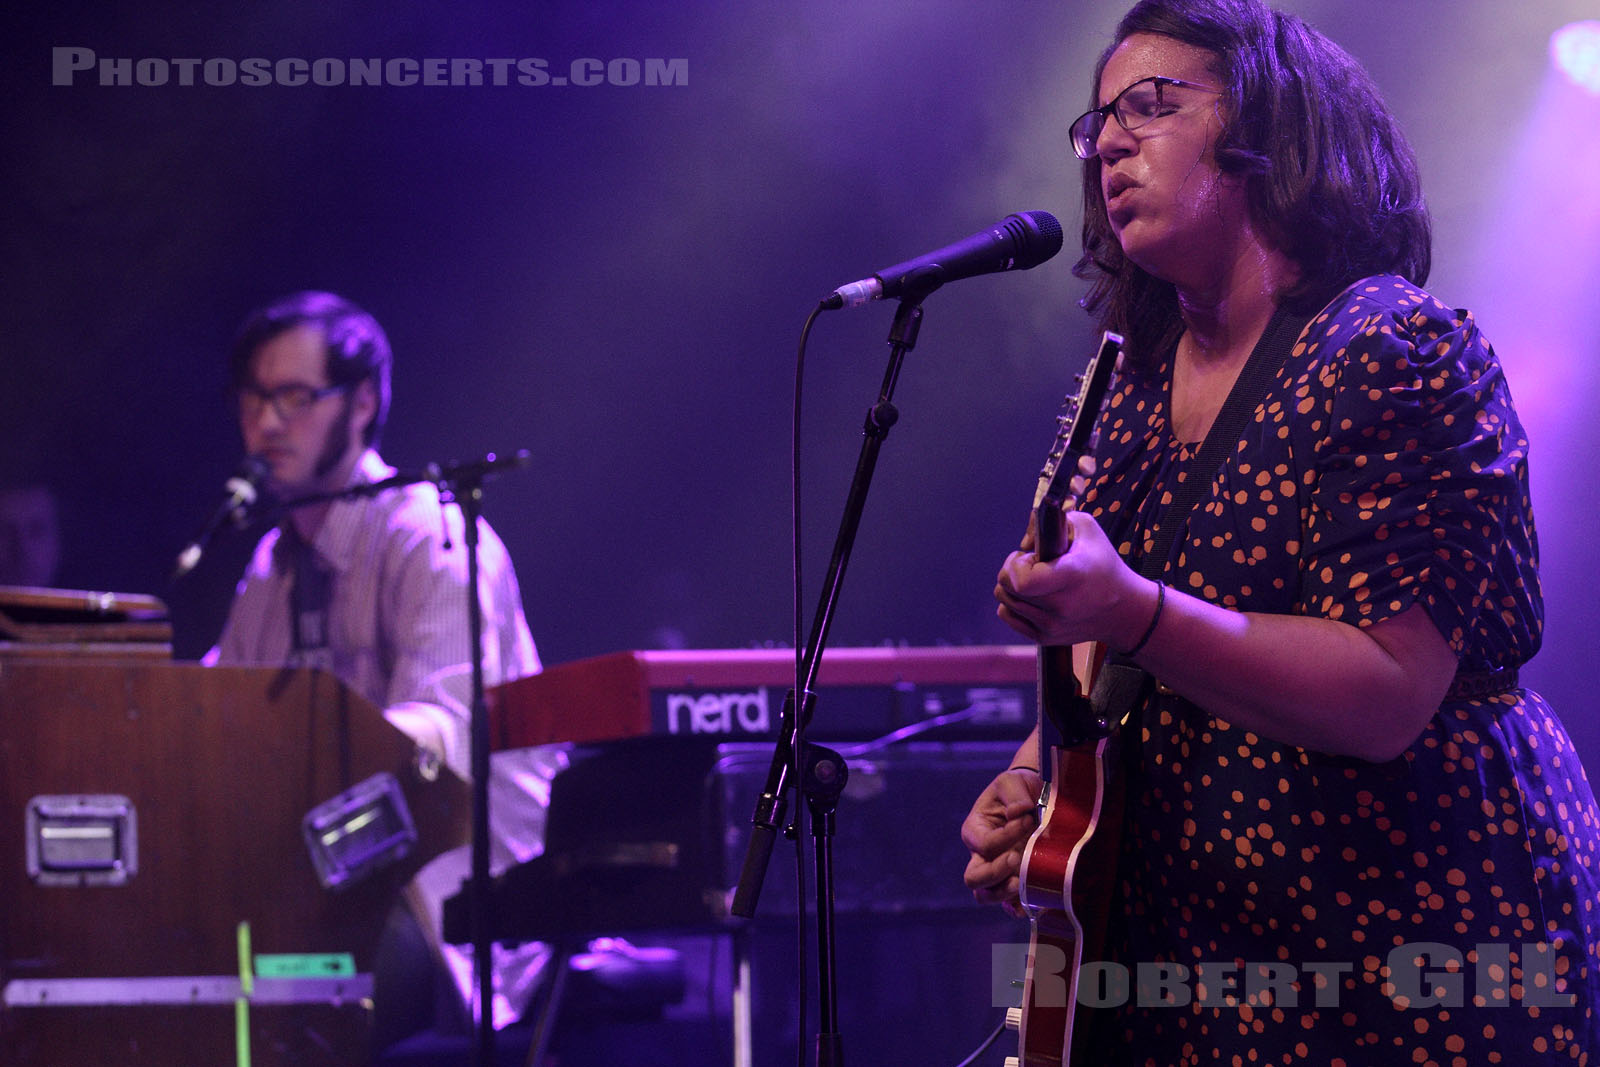 ALABAMA SHAKES - 2012-11-10 - PARIS - La Cigale